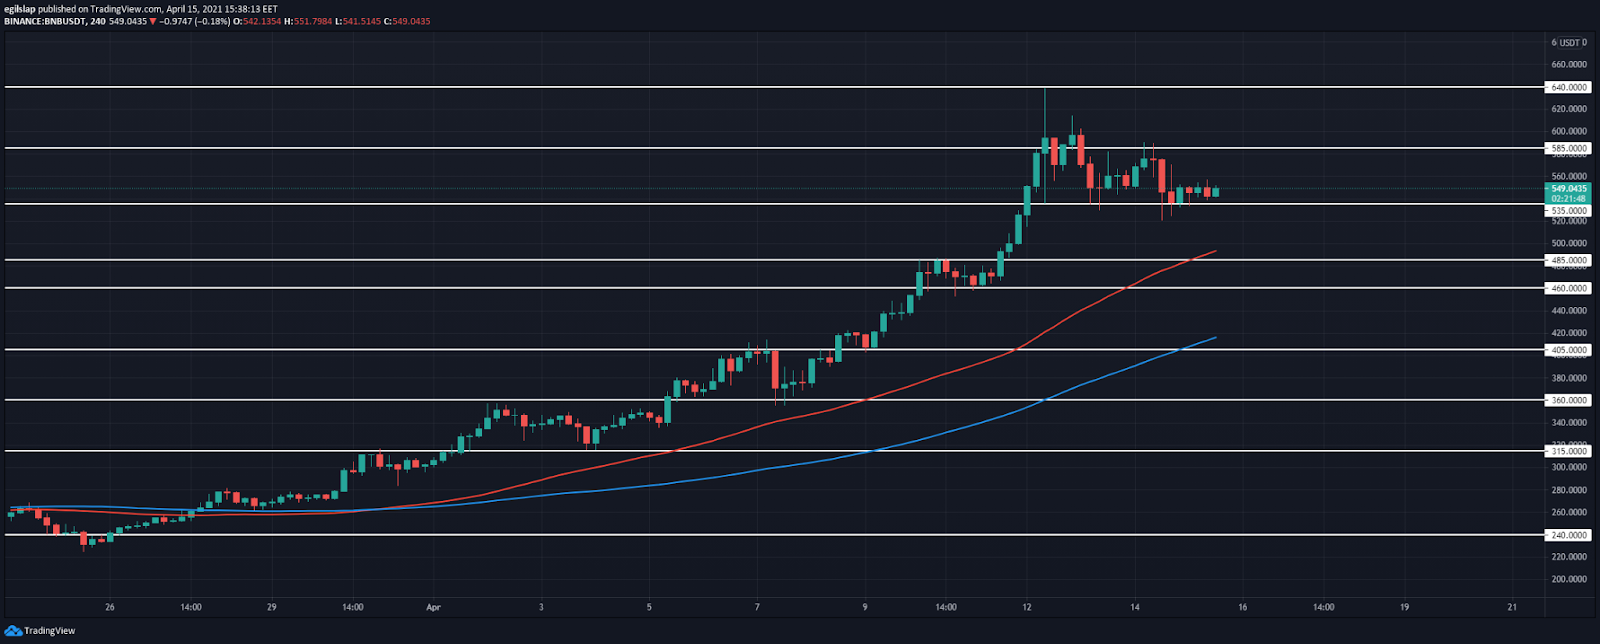 Binance Coin price prediction: Binance Coin retraces to $535, prepares to set another lower high?